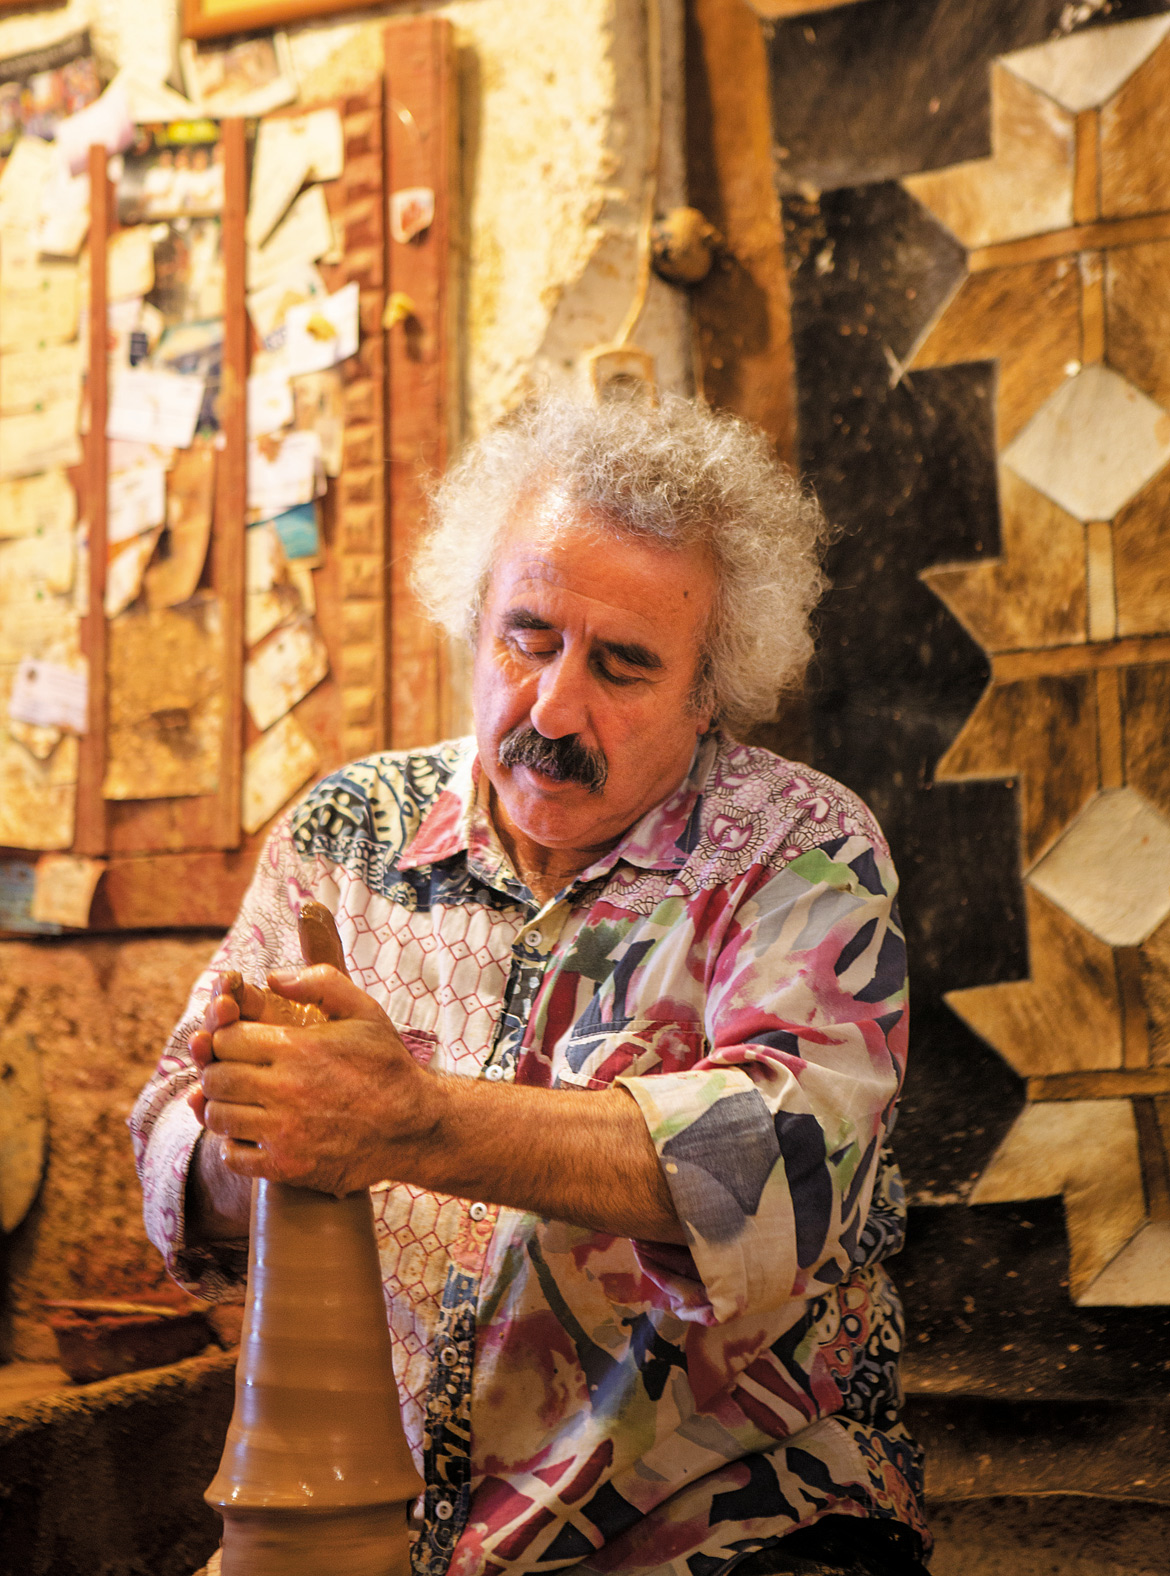 Turkish potter, Chez Galip at his workshop-cum-gallery in the town of Avanos, known for its high quality earthenware since 3000 BC